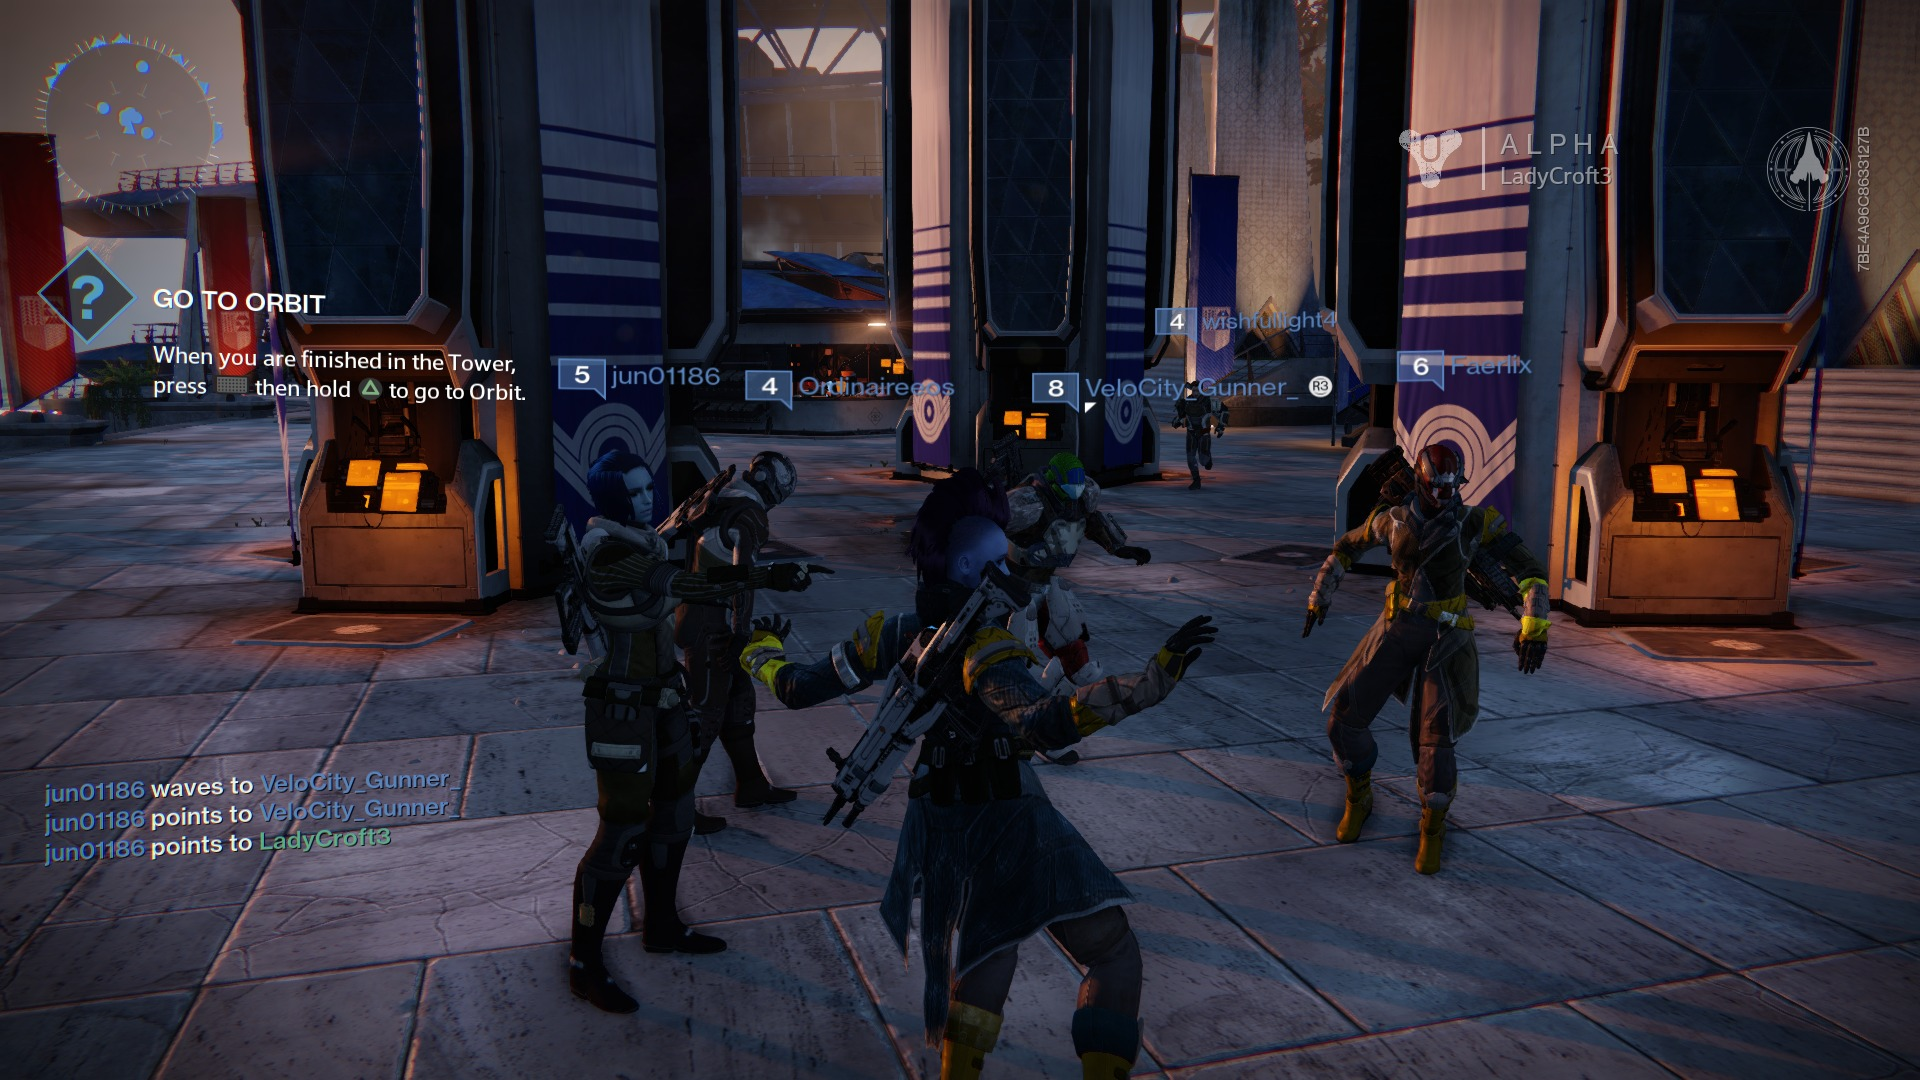 Destiny's community could use some work for better communication.